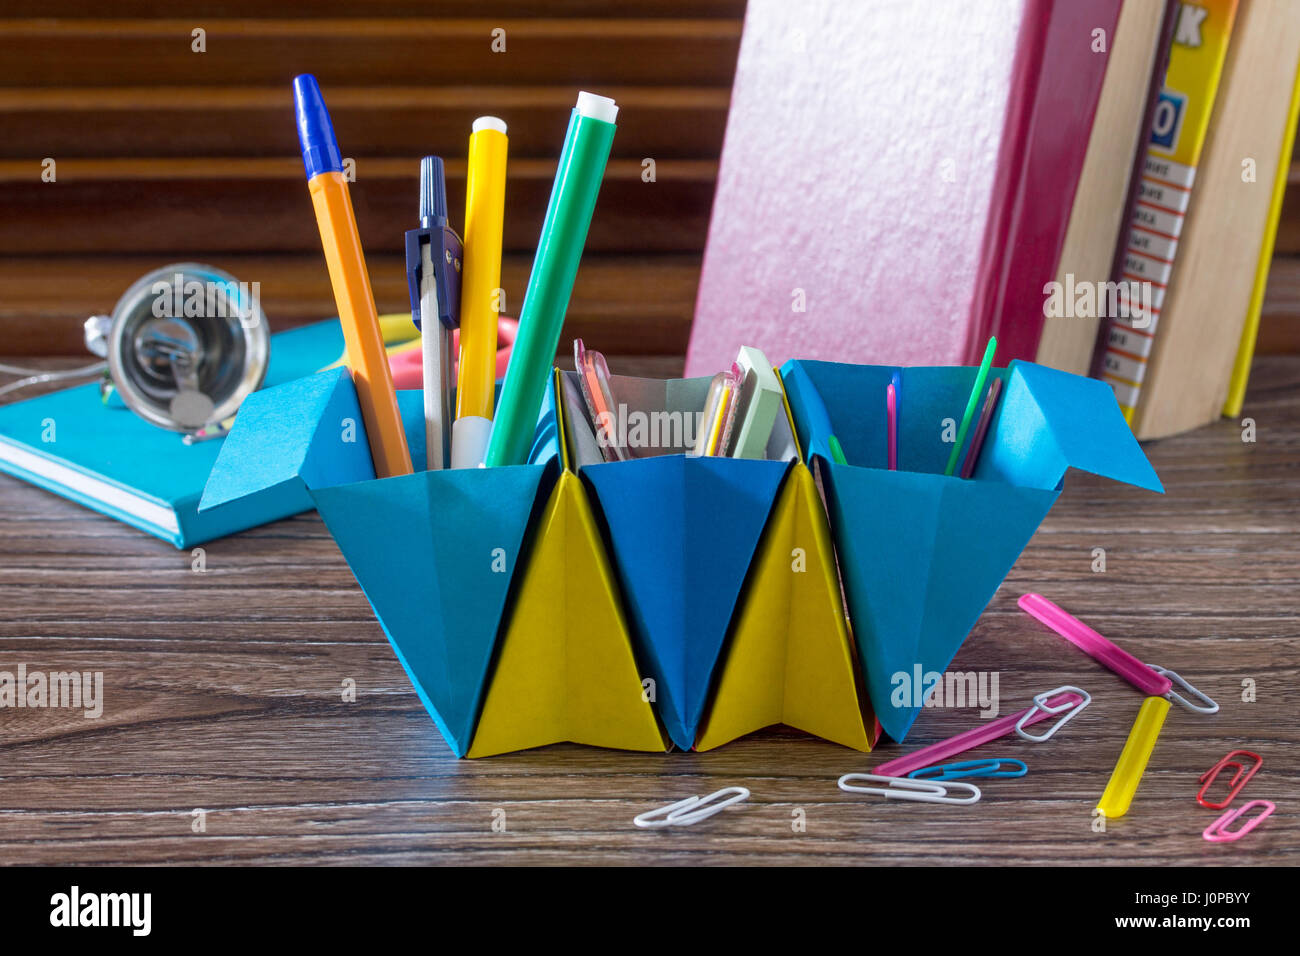 A Children S Office Organizer Made Of Paper Is Filled With Office